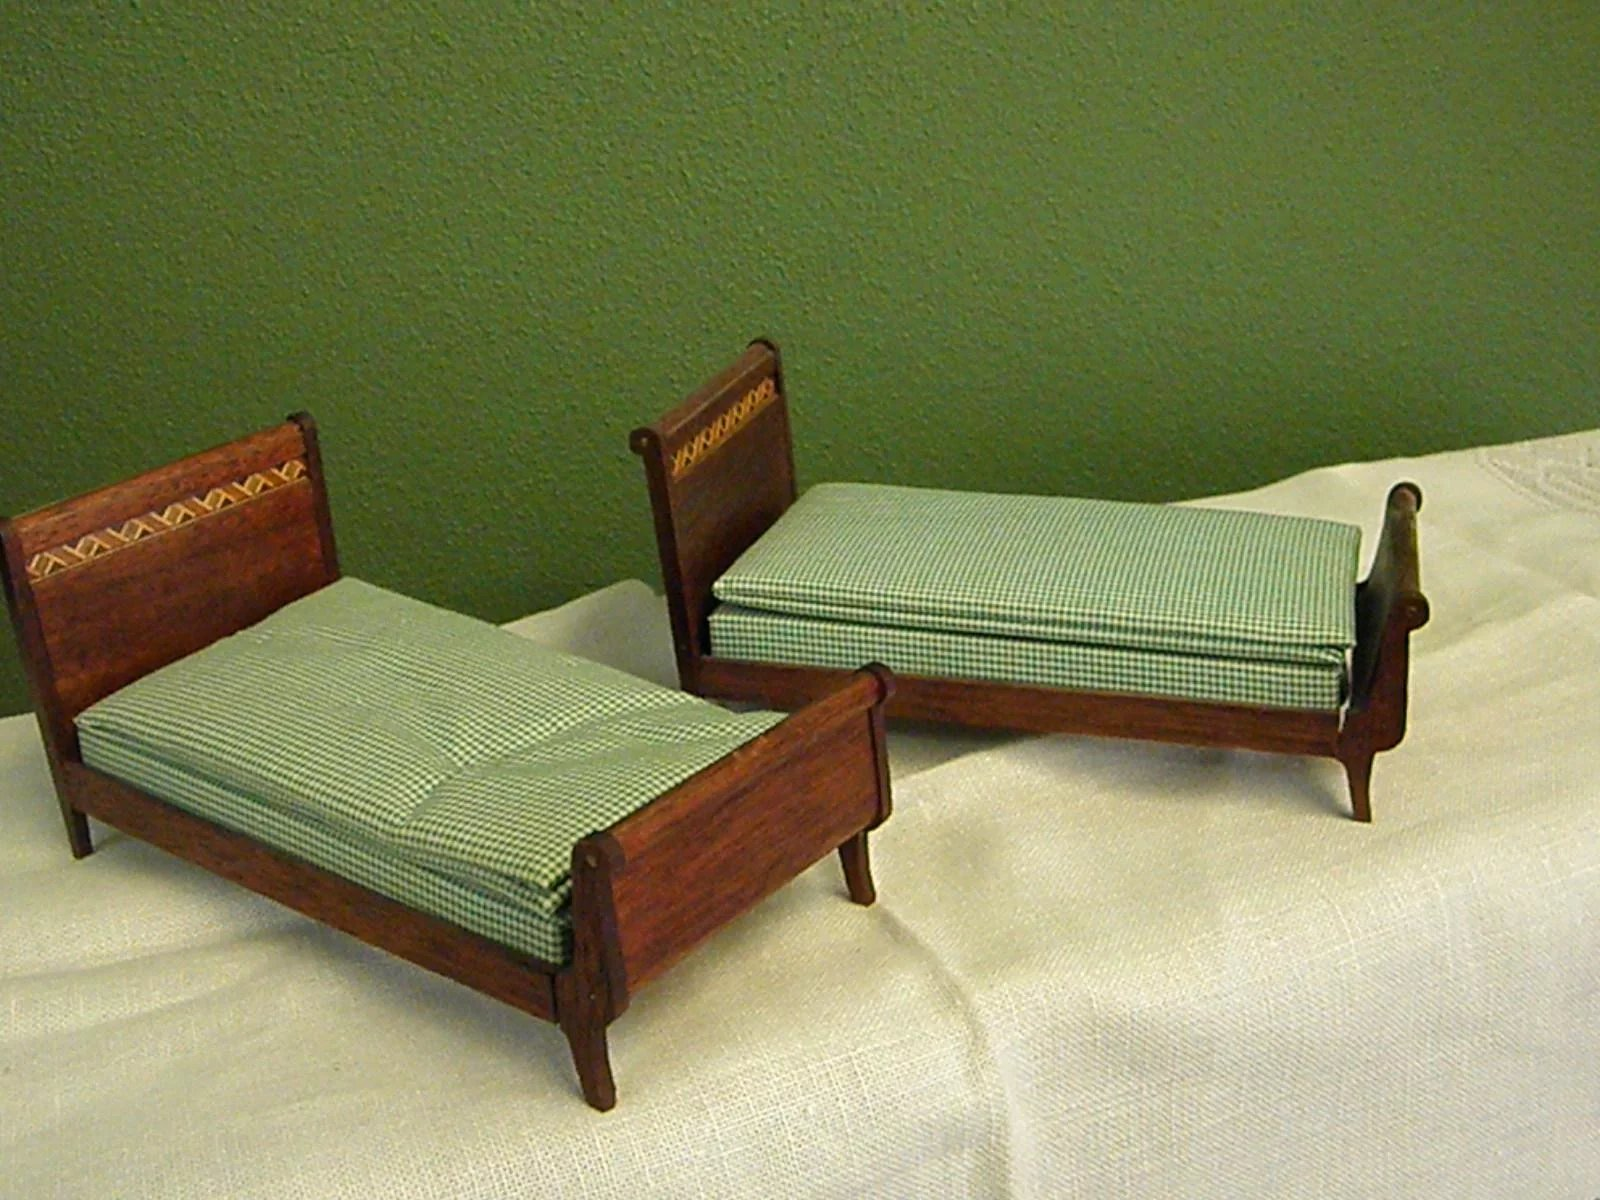 Darling Larger Twin Mahogany Dollhouse Beds Bluebonnet